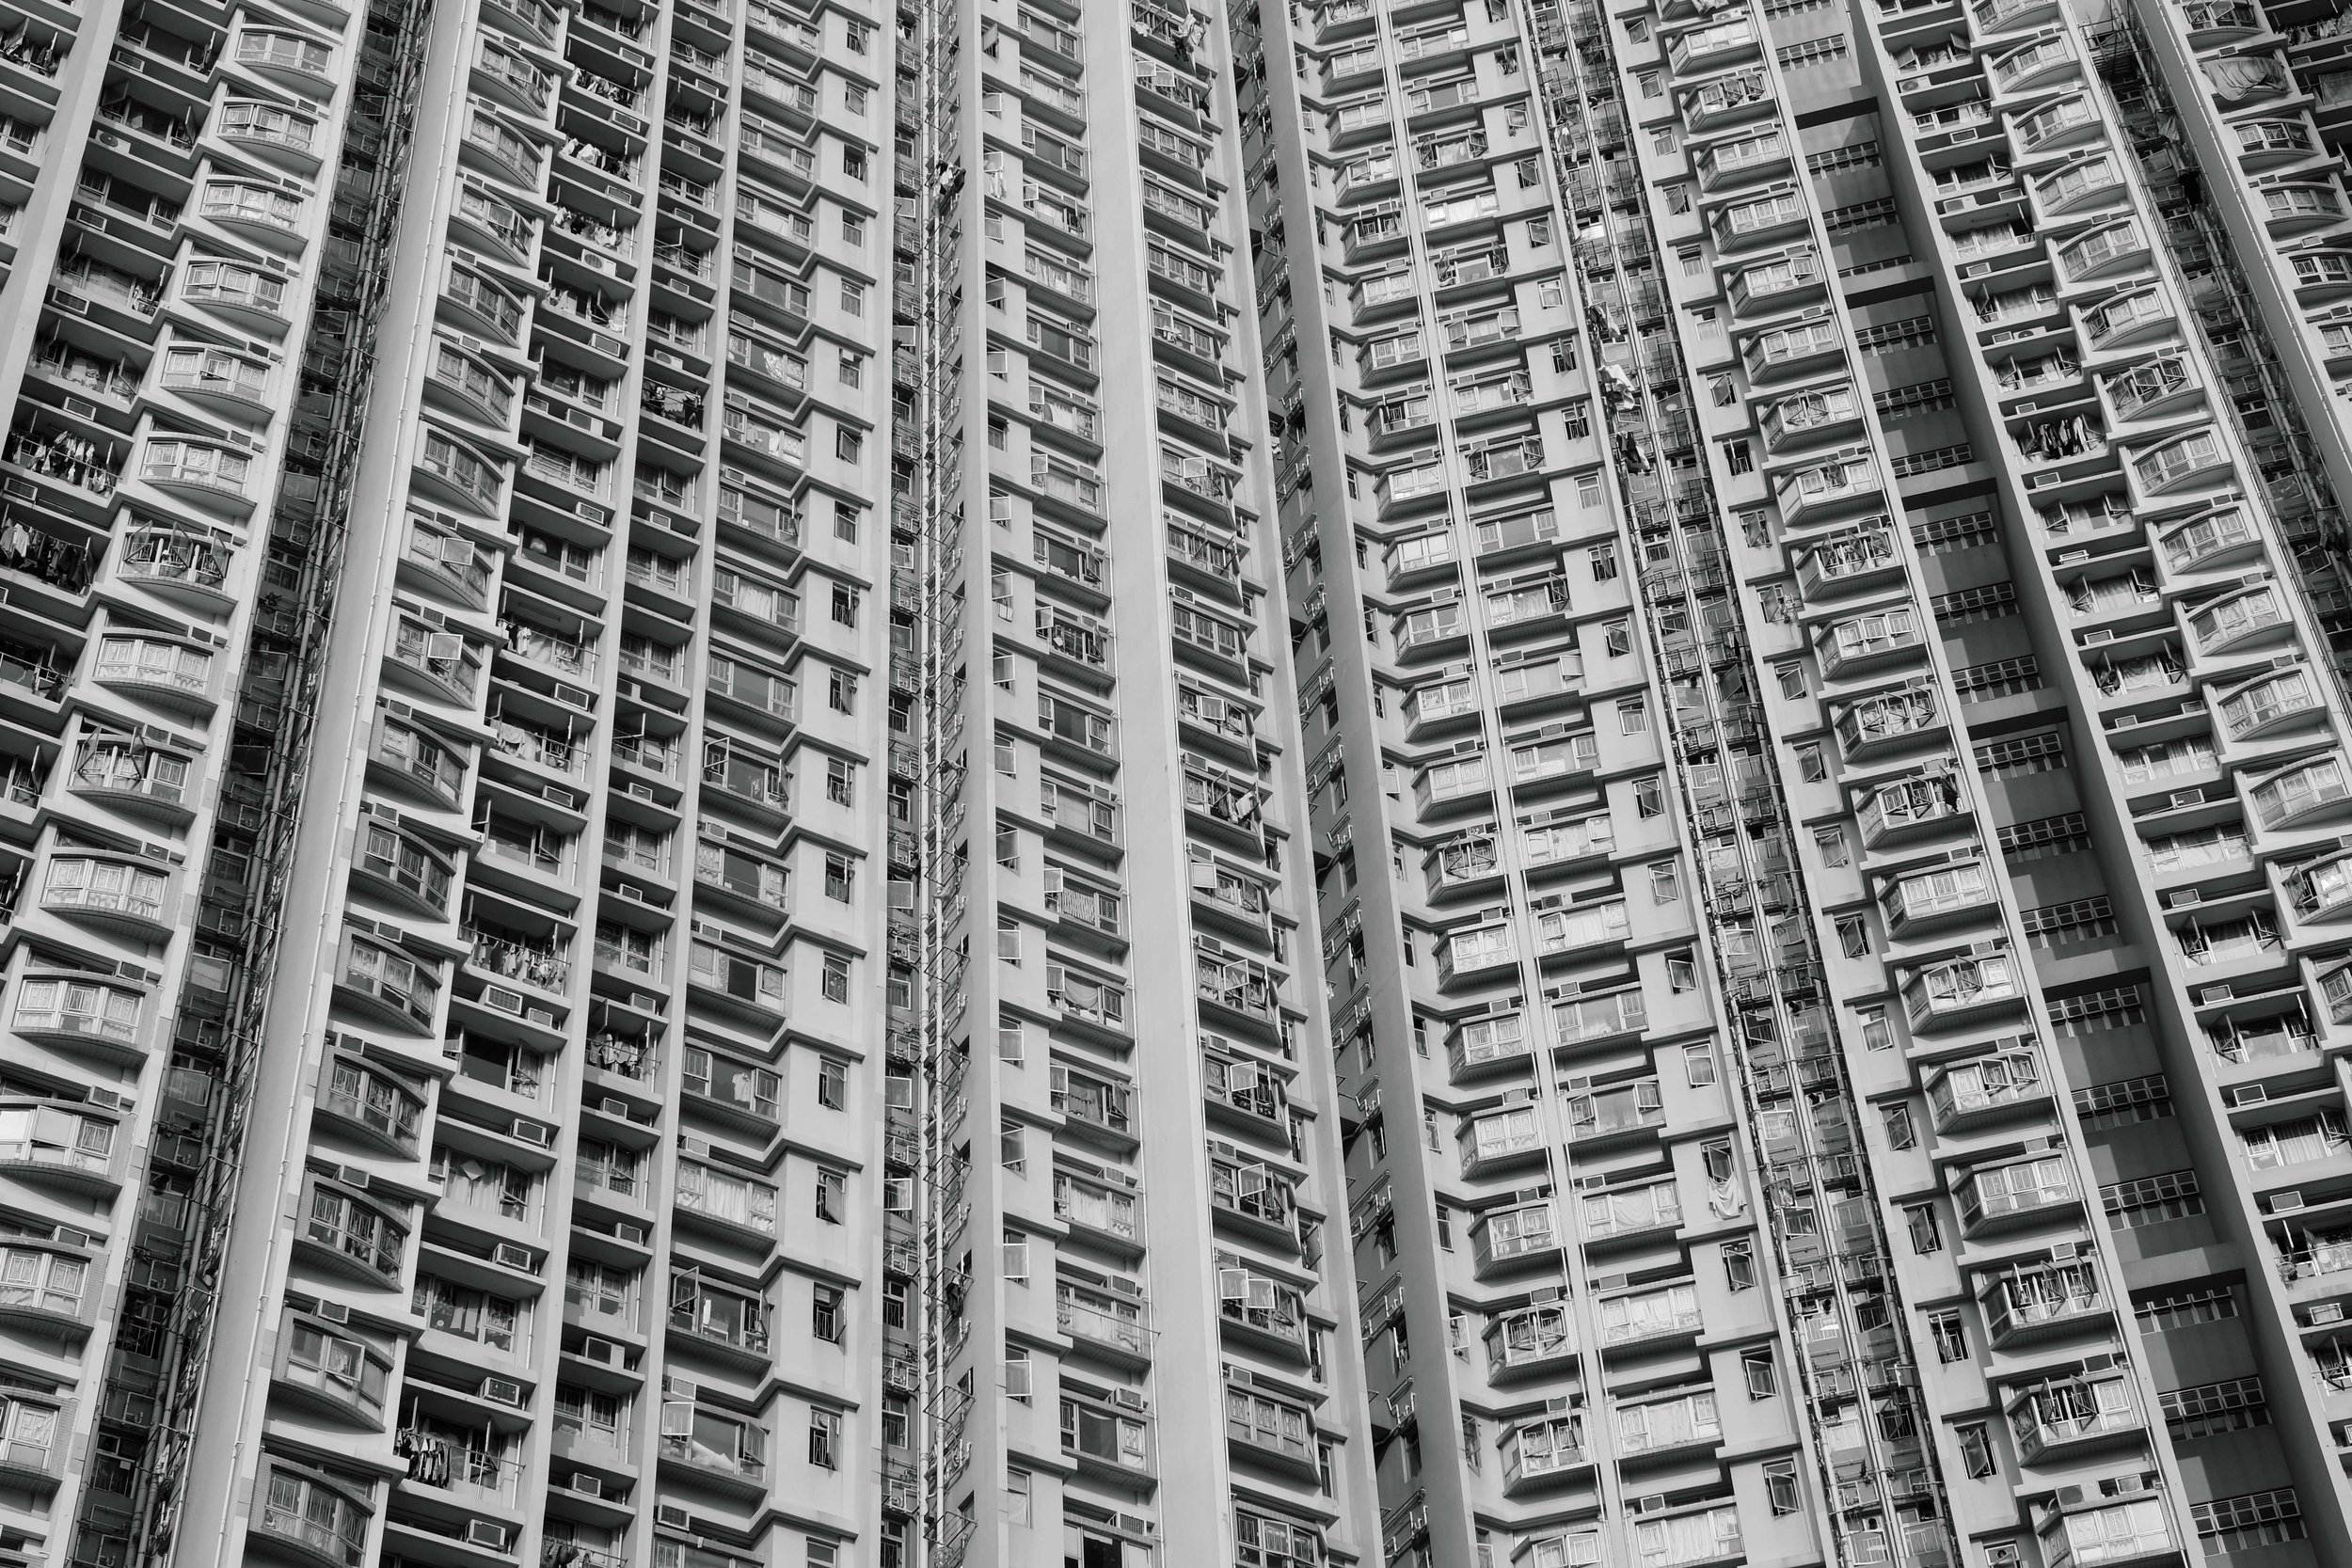 Dense is usually the first word that comes to mind when thinking about Hong Kong's public housing.